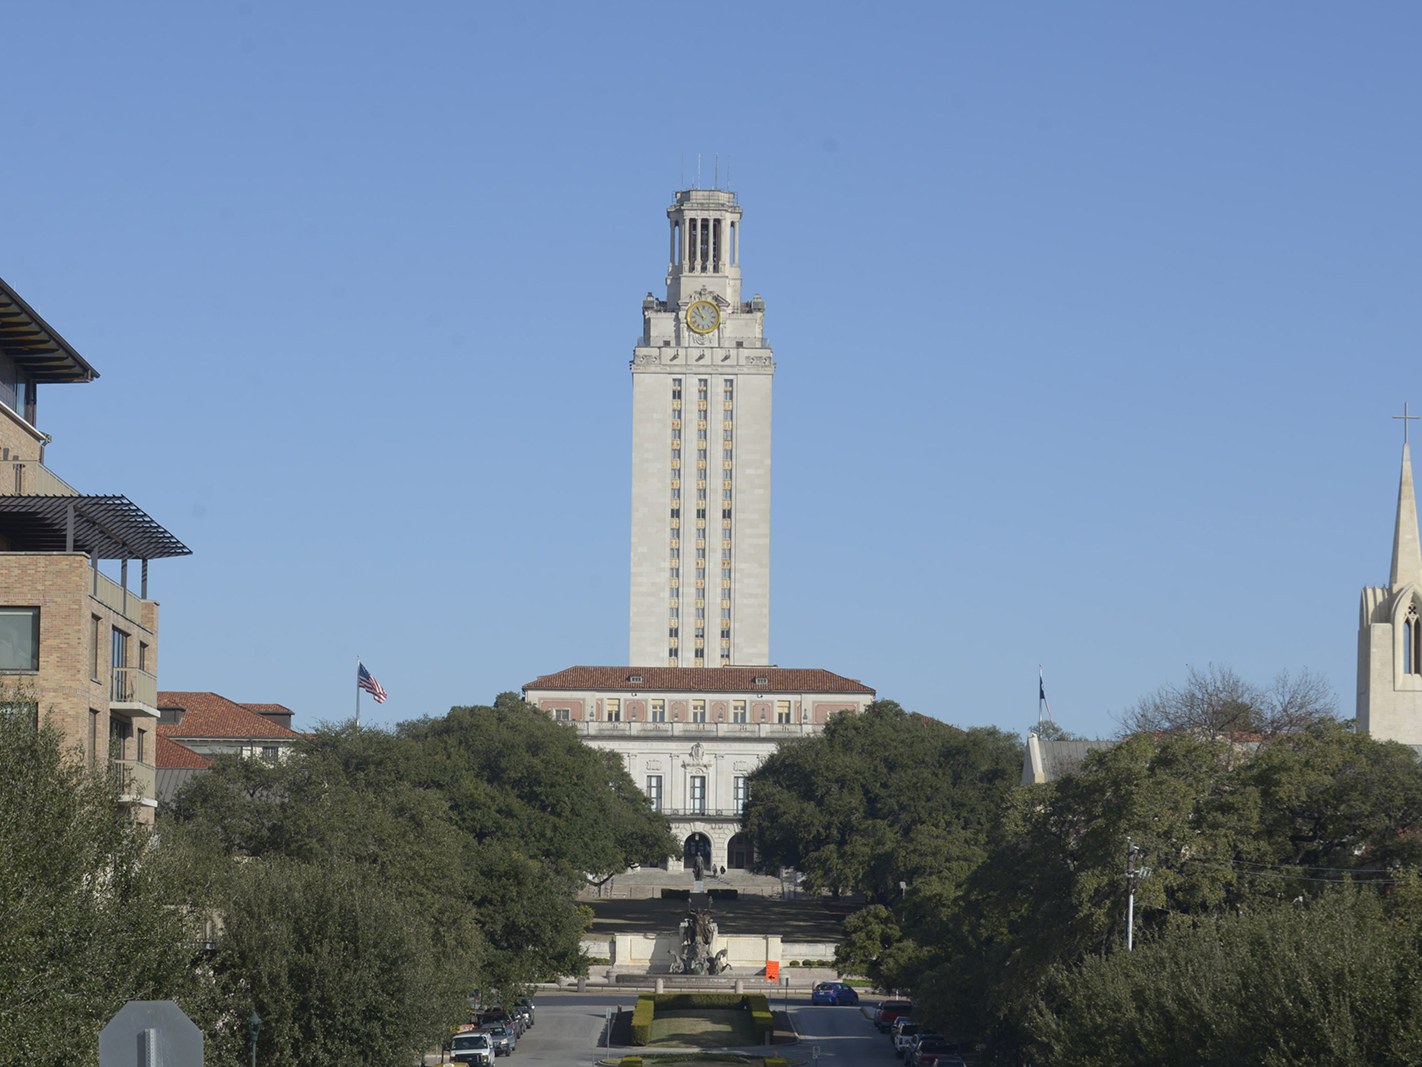 UT tower and campus